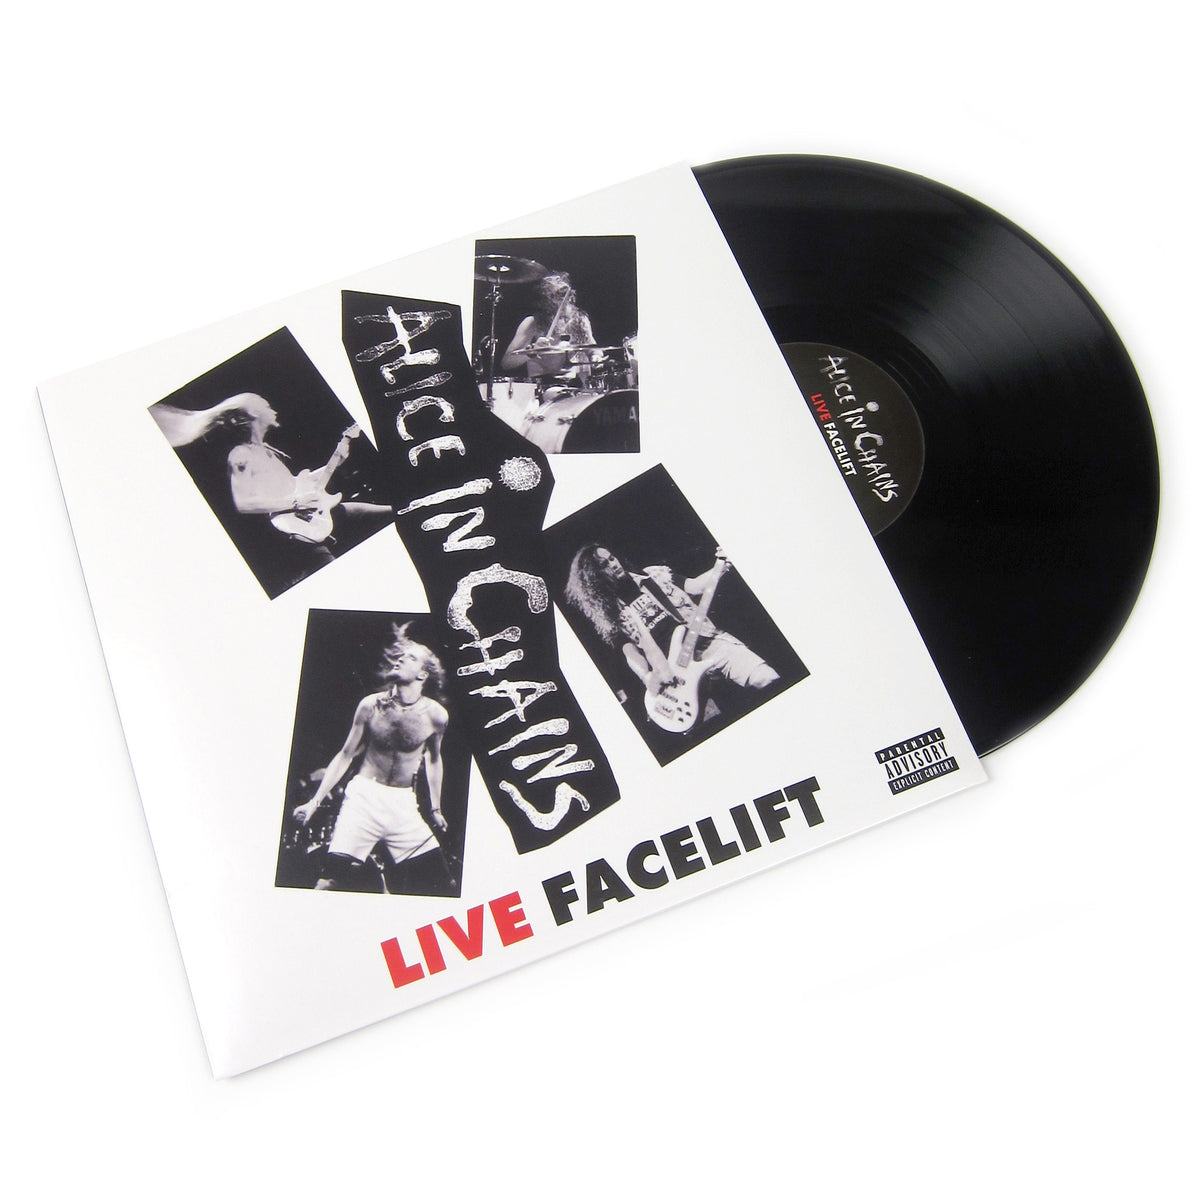 Alice In Chains: Live - Facelift Vinyl LP (Record Store Day)